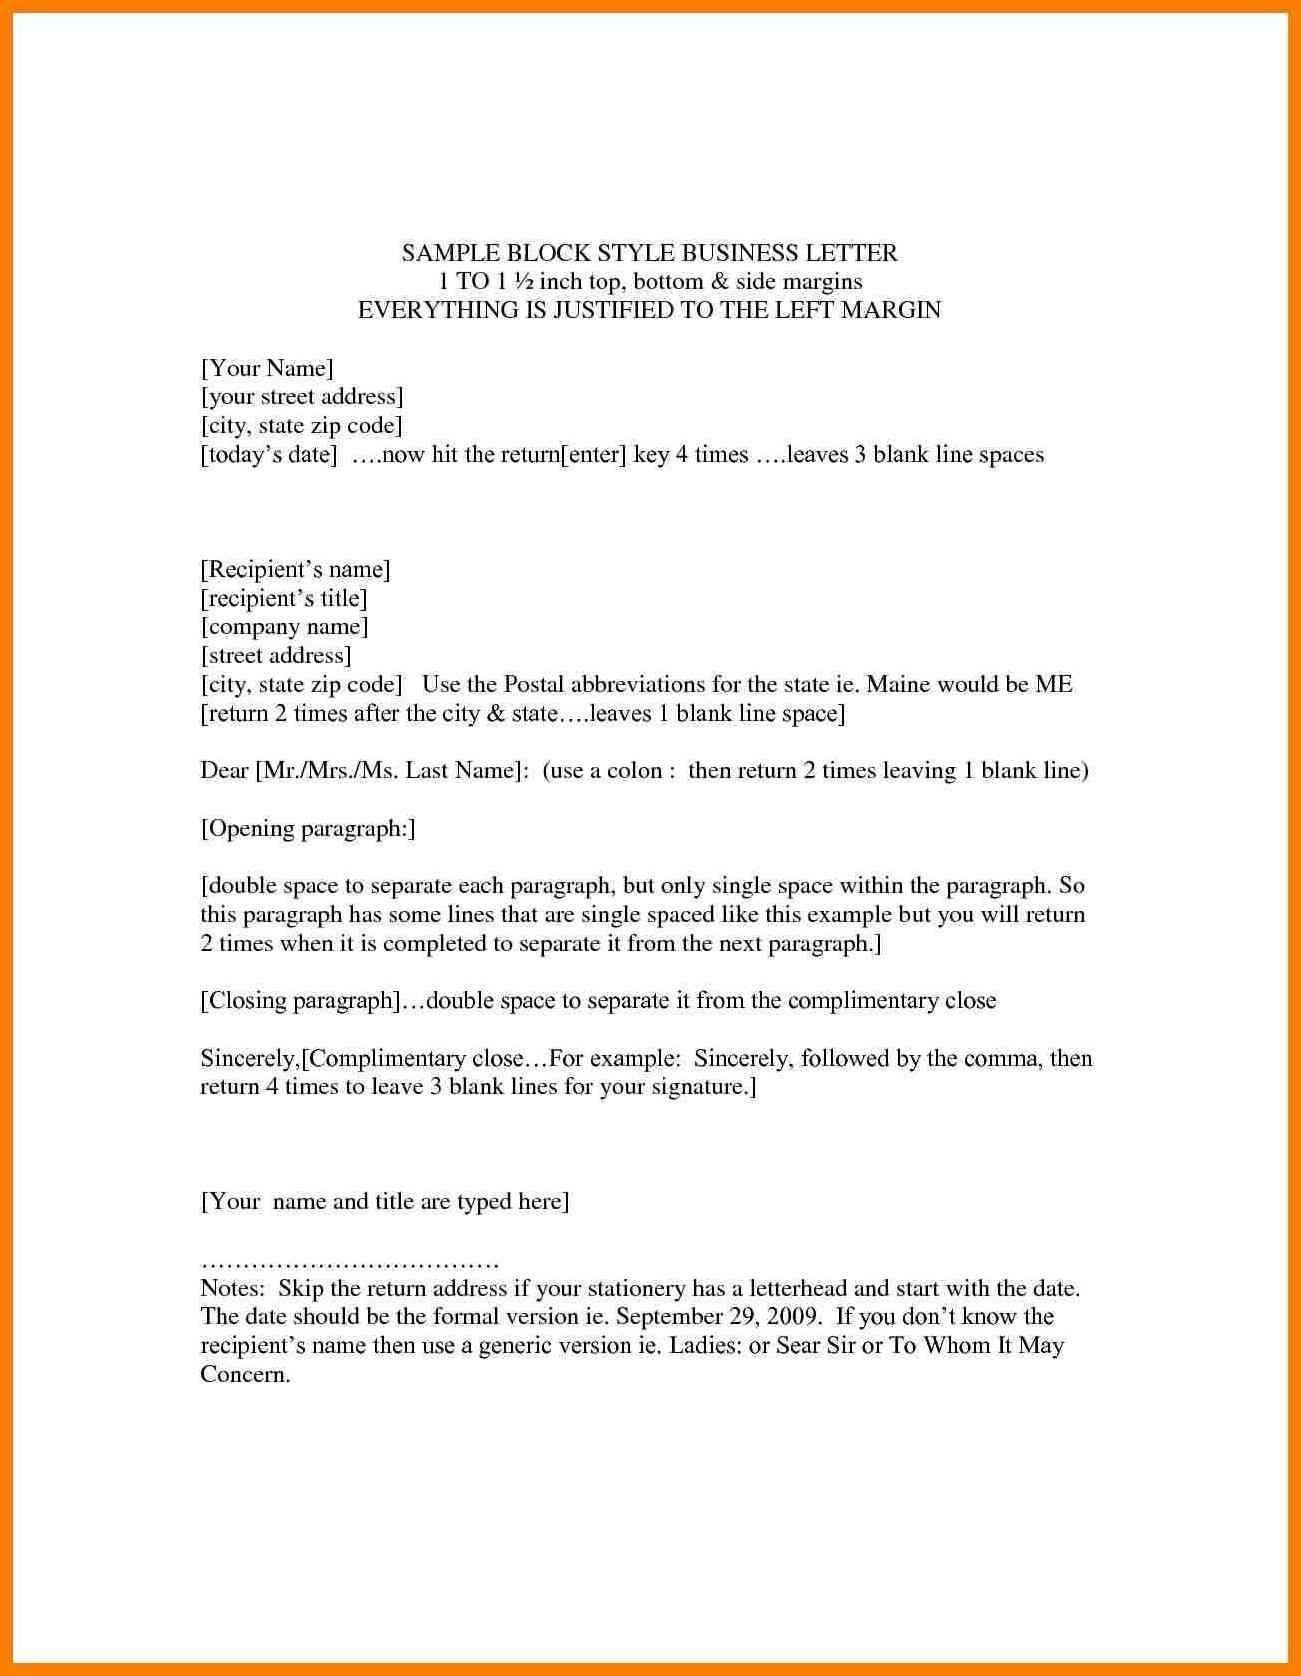 new letter format for stationery request(画像あり) career objective accounting student microsoft cv templates 2018 sample resume skills and abilities